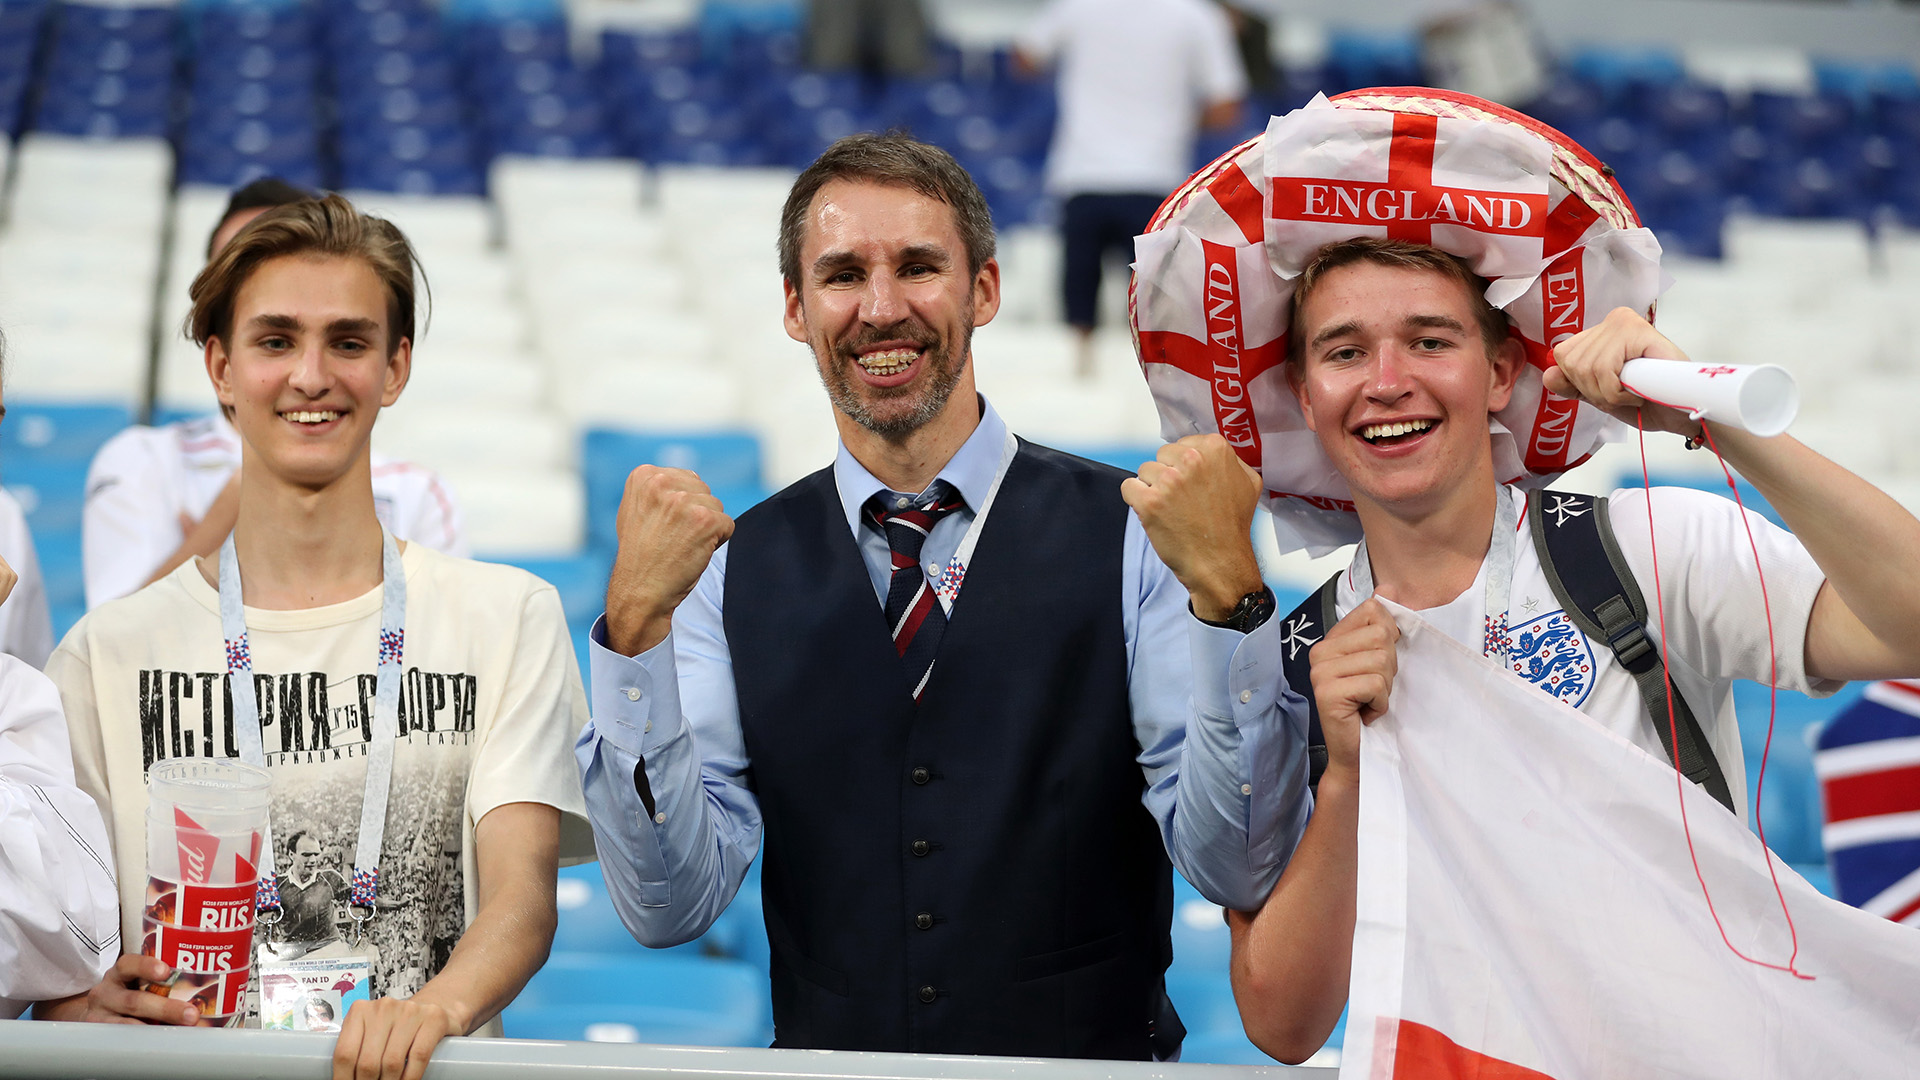 England fans Gareth Southgate lookalike World Cup 2018